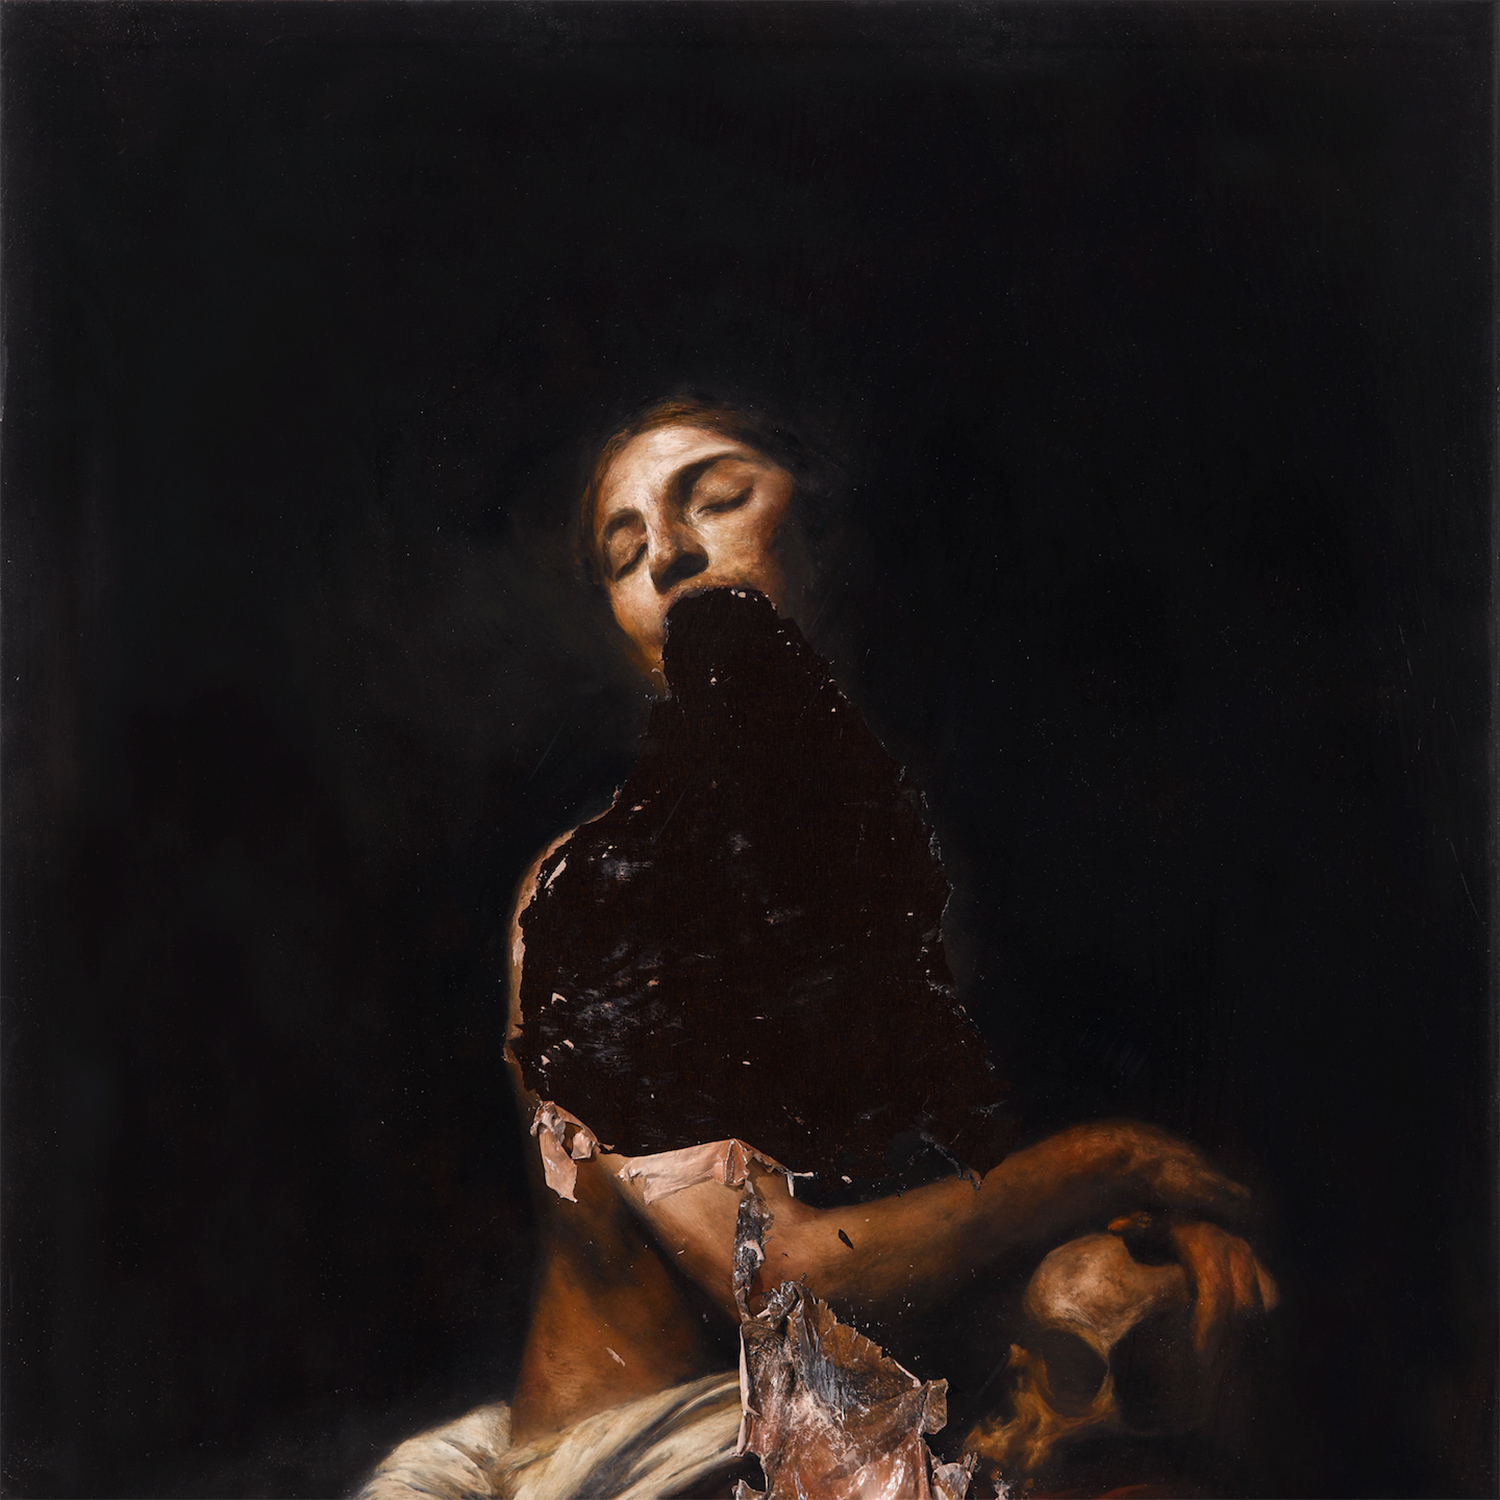 Nicola Samori - painting, woman missing lower face